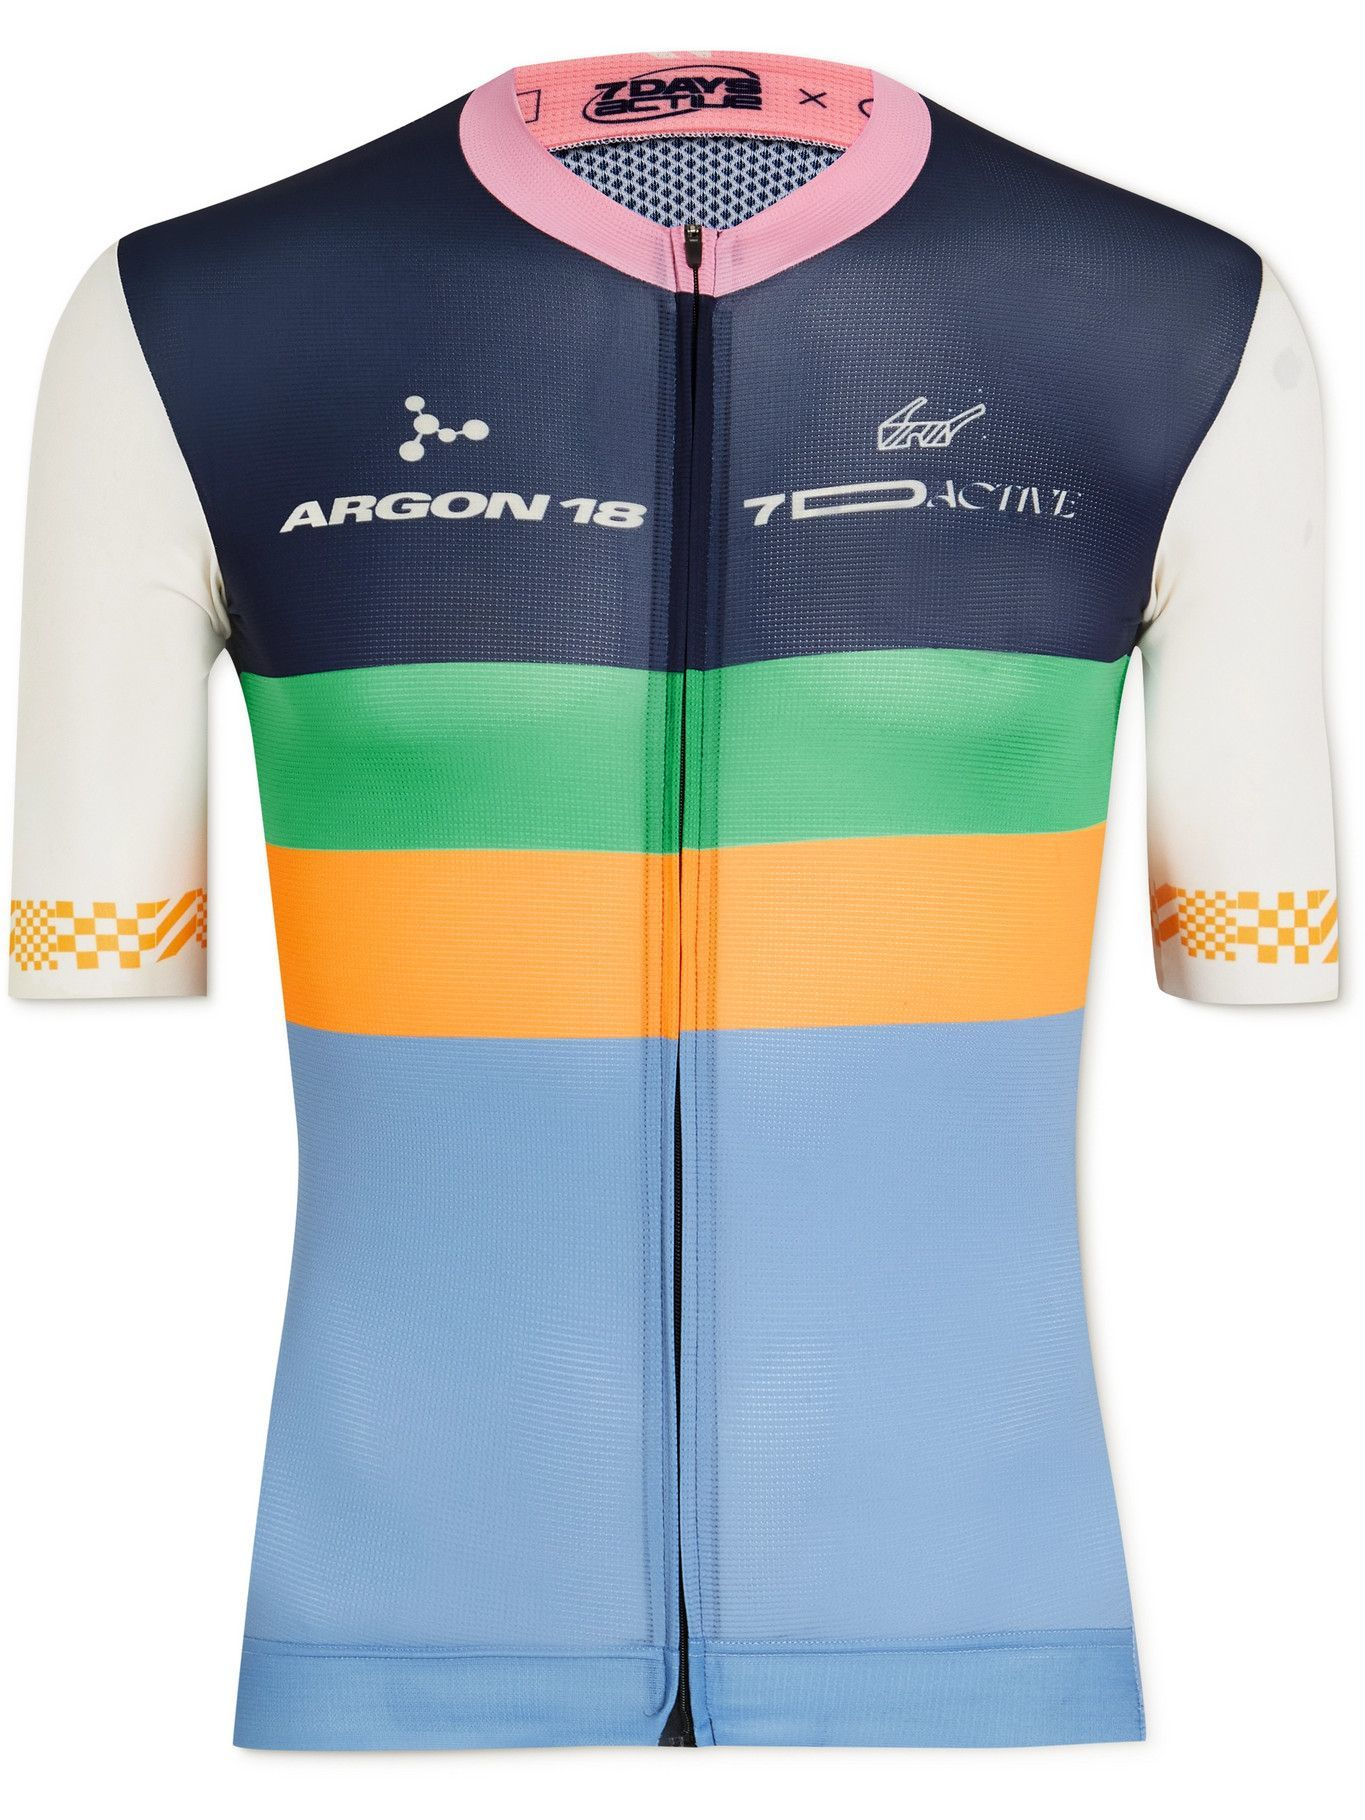 Photo: 7 DAYS ACTIVE - Argon 18 Colour-Block Recycled Cycling Jersey - Blue